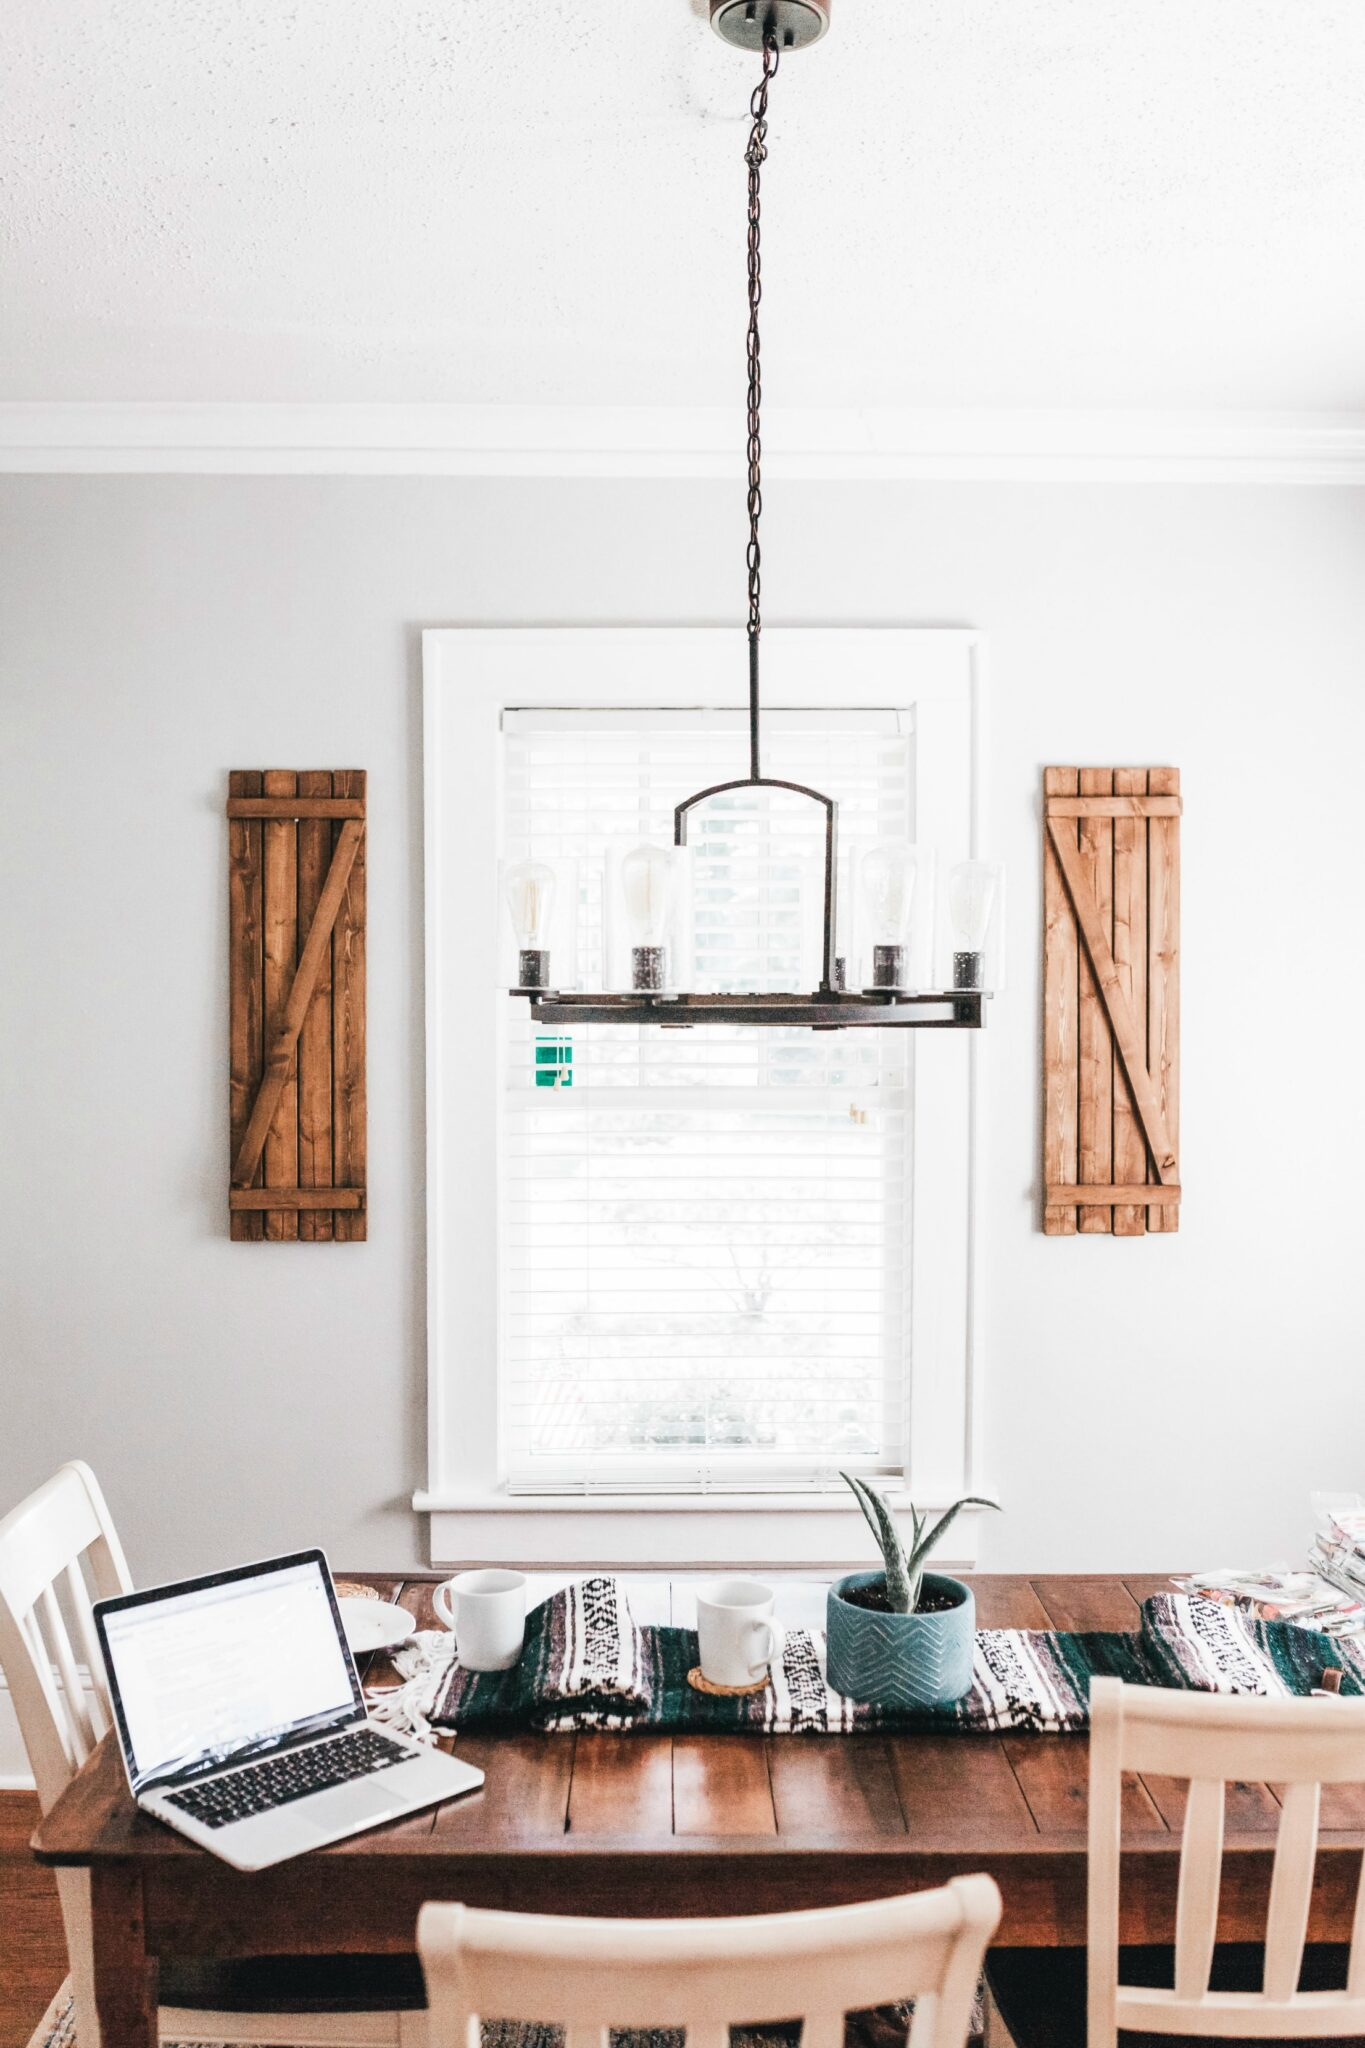 A beautiful farmhouse kitchen showing a bright window with blinds. A chandelier hangs and below is a makeshift office.